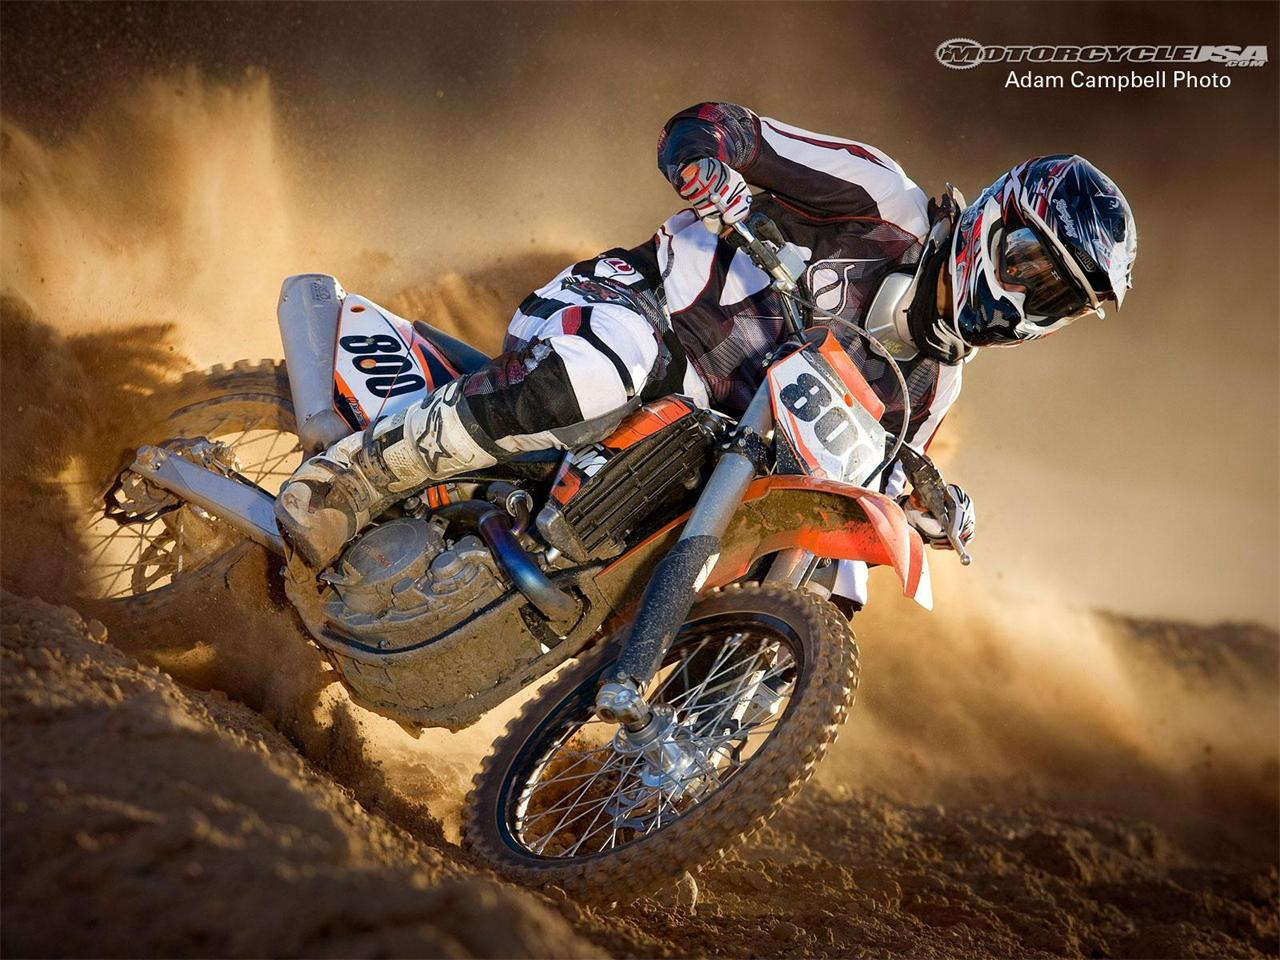 Wallpaper and Calendar Gallery KTM Dirt Bike Wallpapers 1280x960